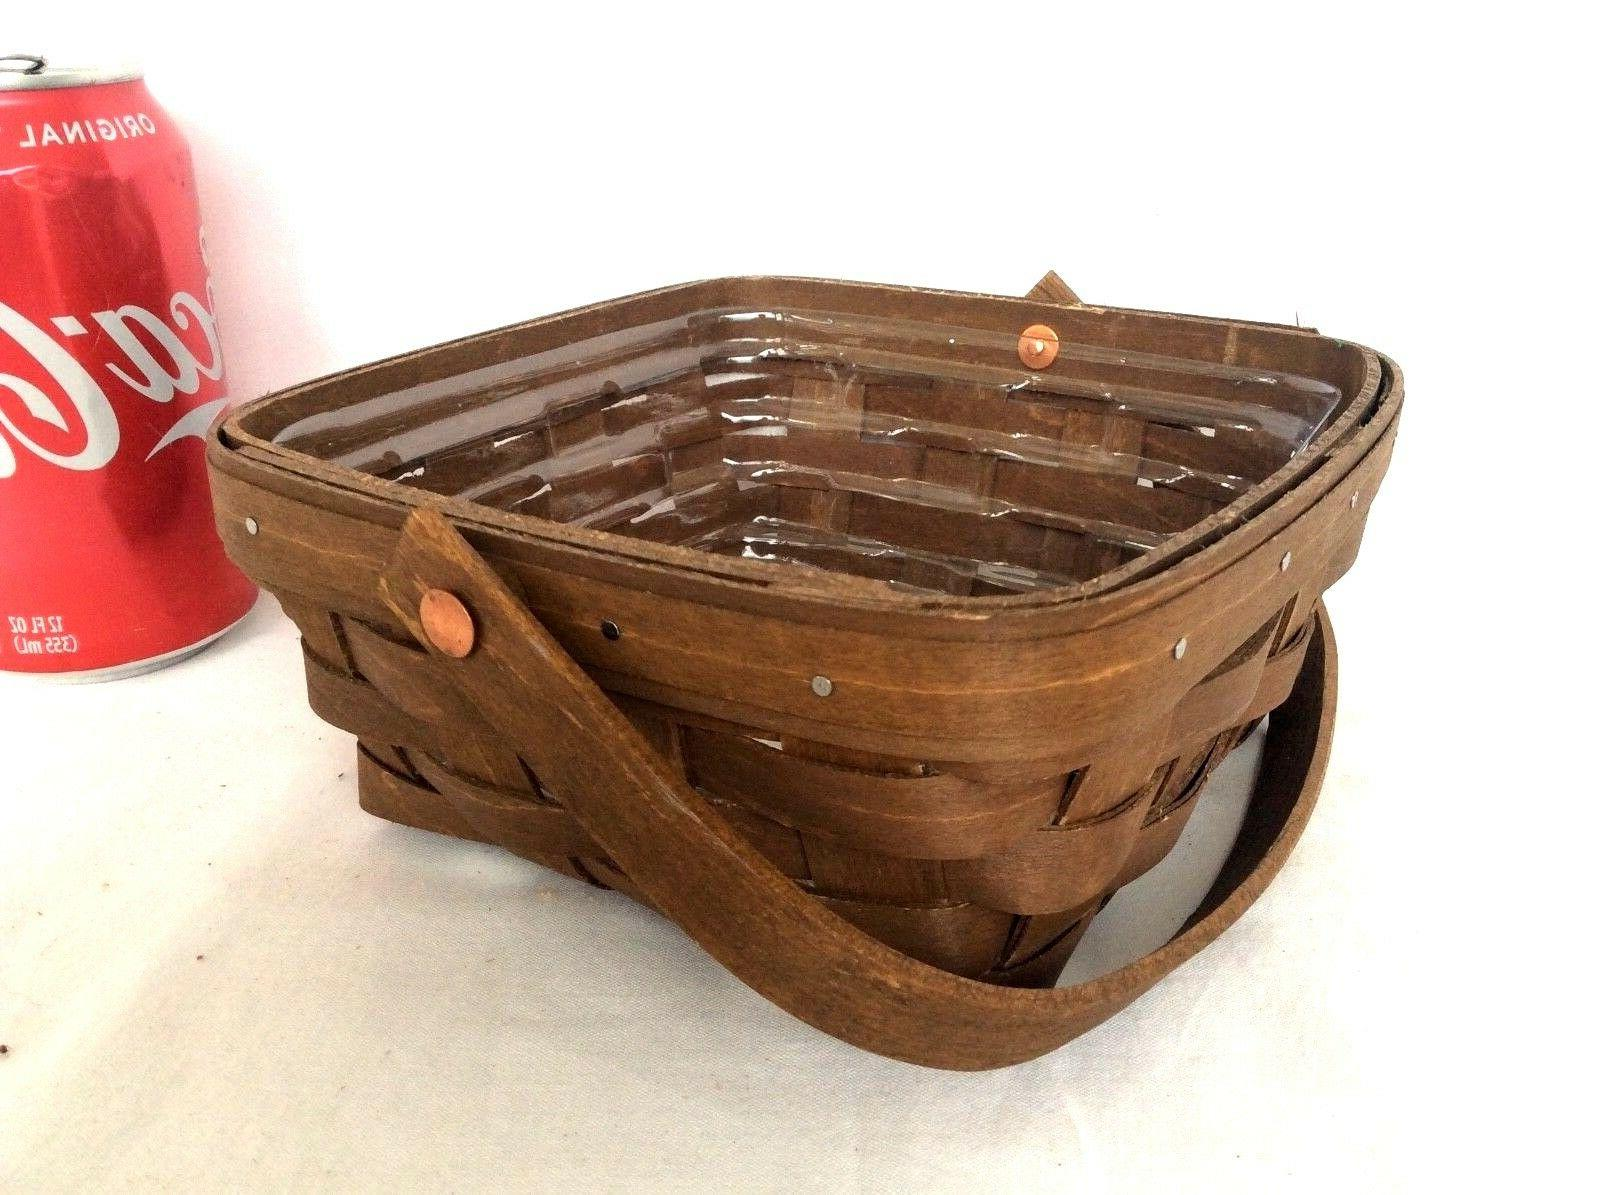 2016 berry basket with handle and protector